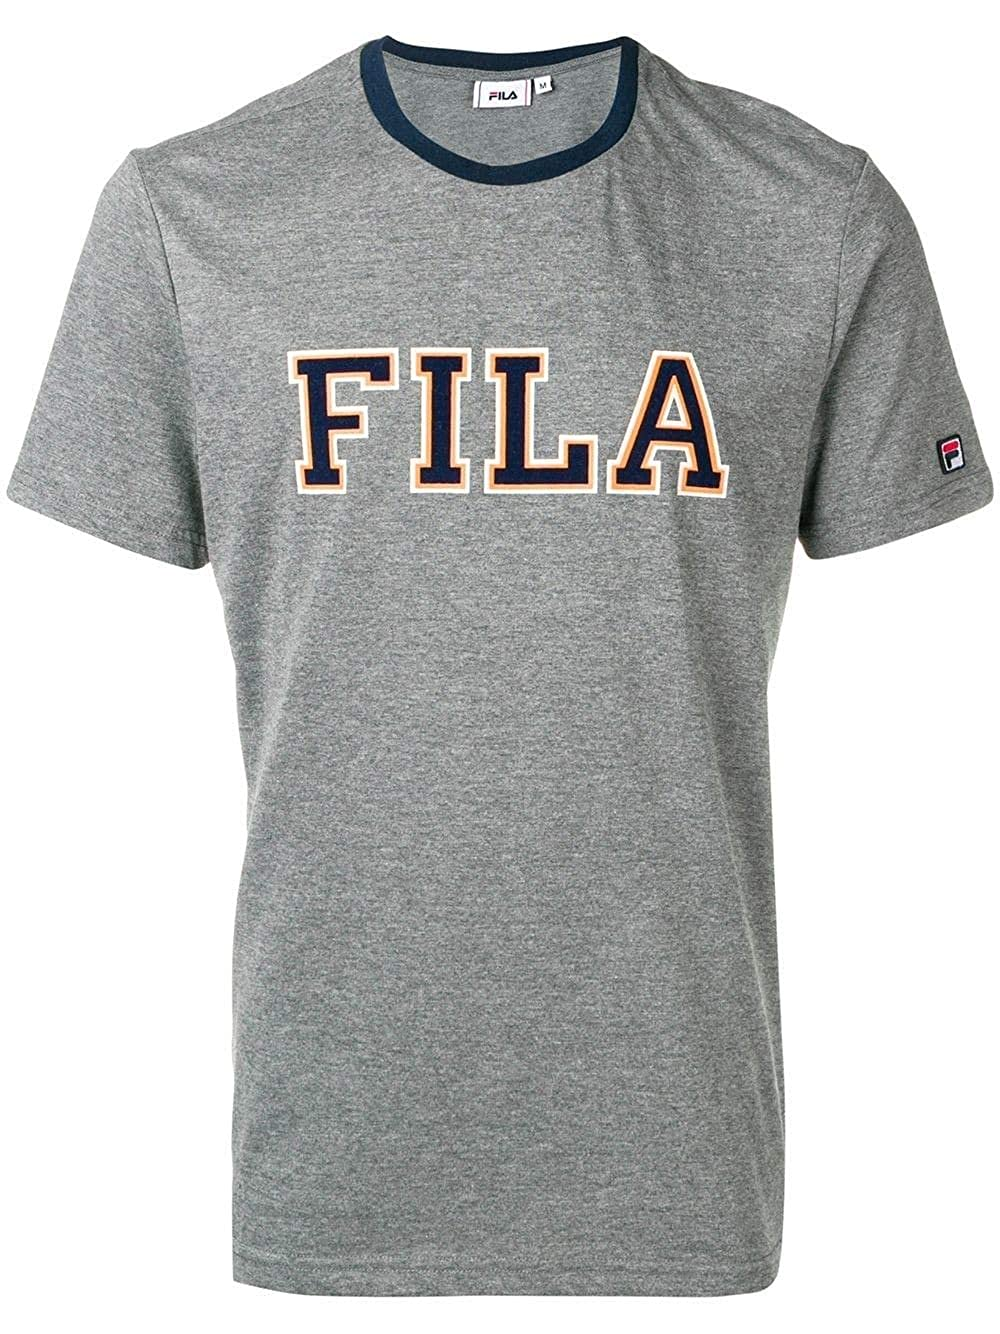 XL Fila Luxury mode Homme 687005V10 gris T-Shirt   Printemps été 19